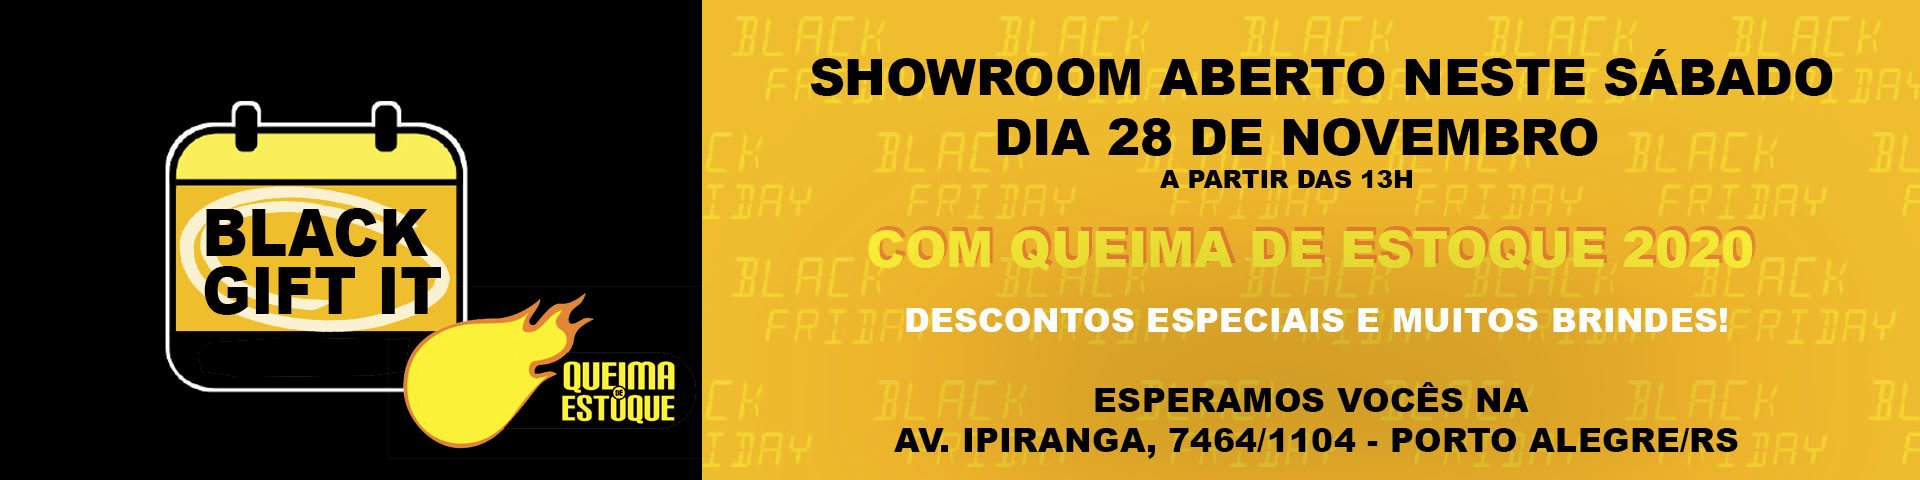 BLACK GIFT IT - SHOWROOM